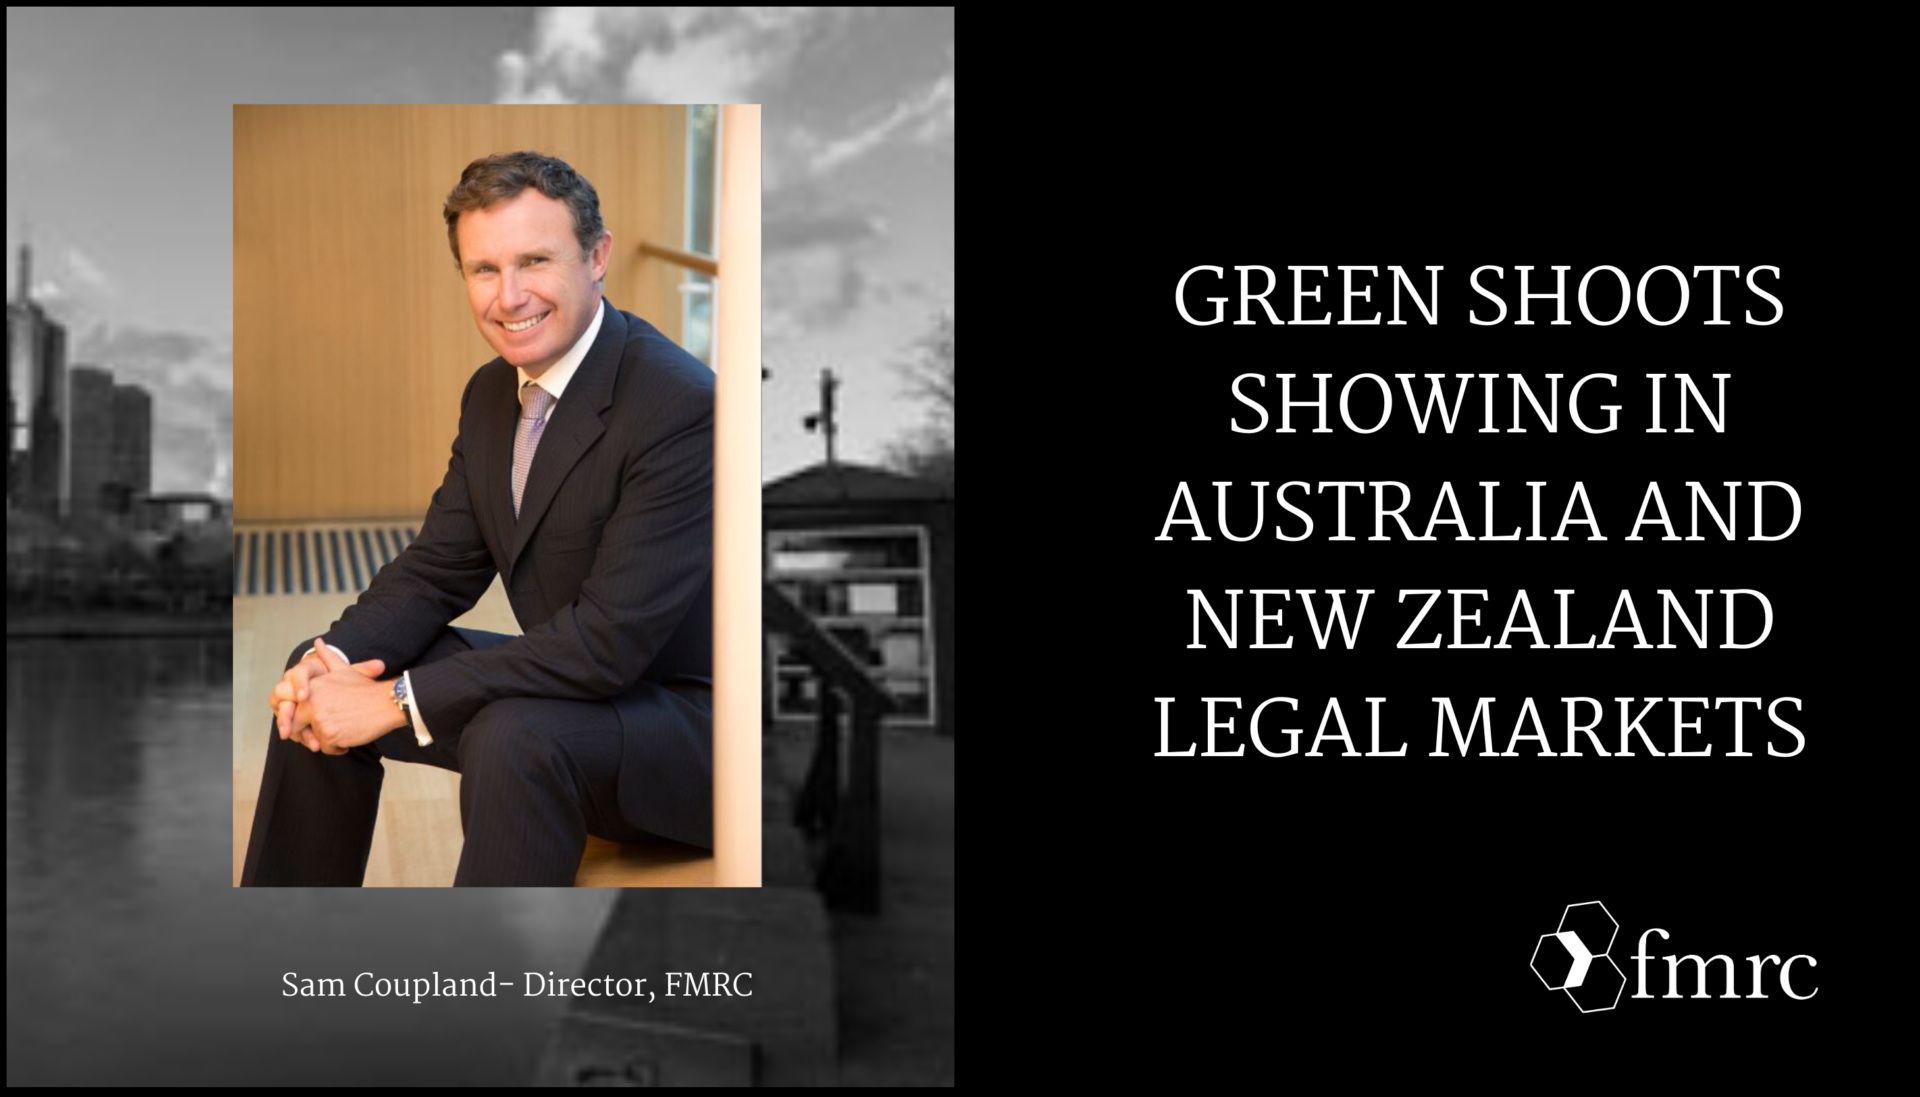 Green Shoots Showing in Australia and New Zealand Legal Markets